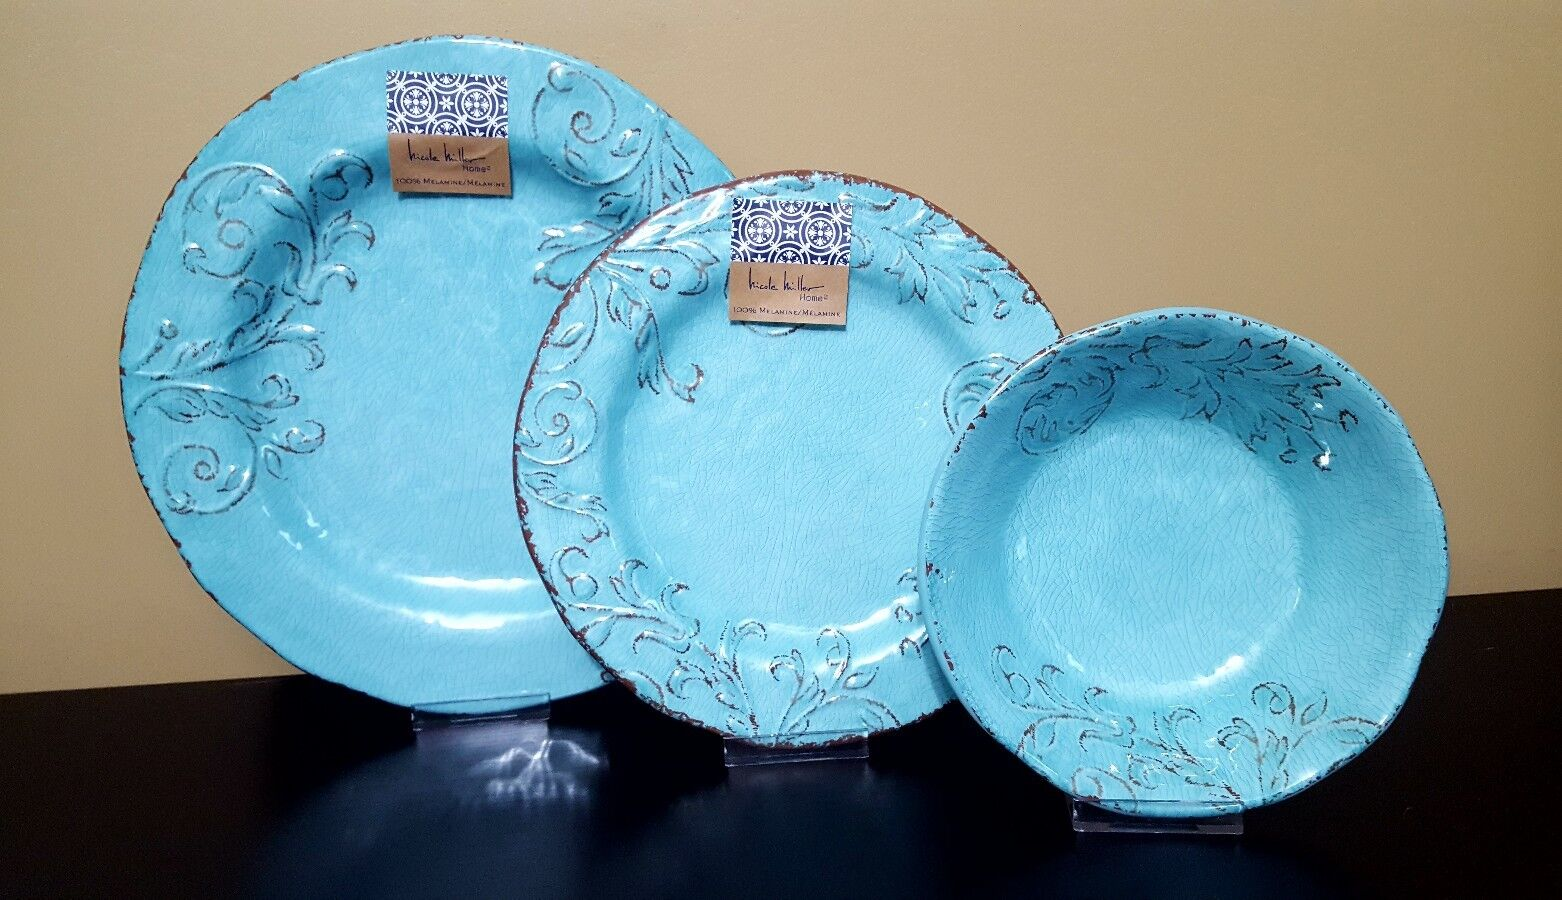 Nicole Miller Melamine Turquoise Scroll Floral Plates Bowls Dinnerware 12pc